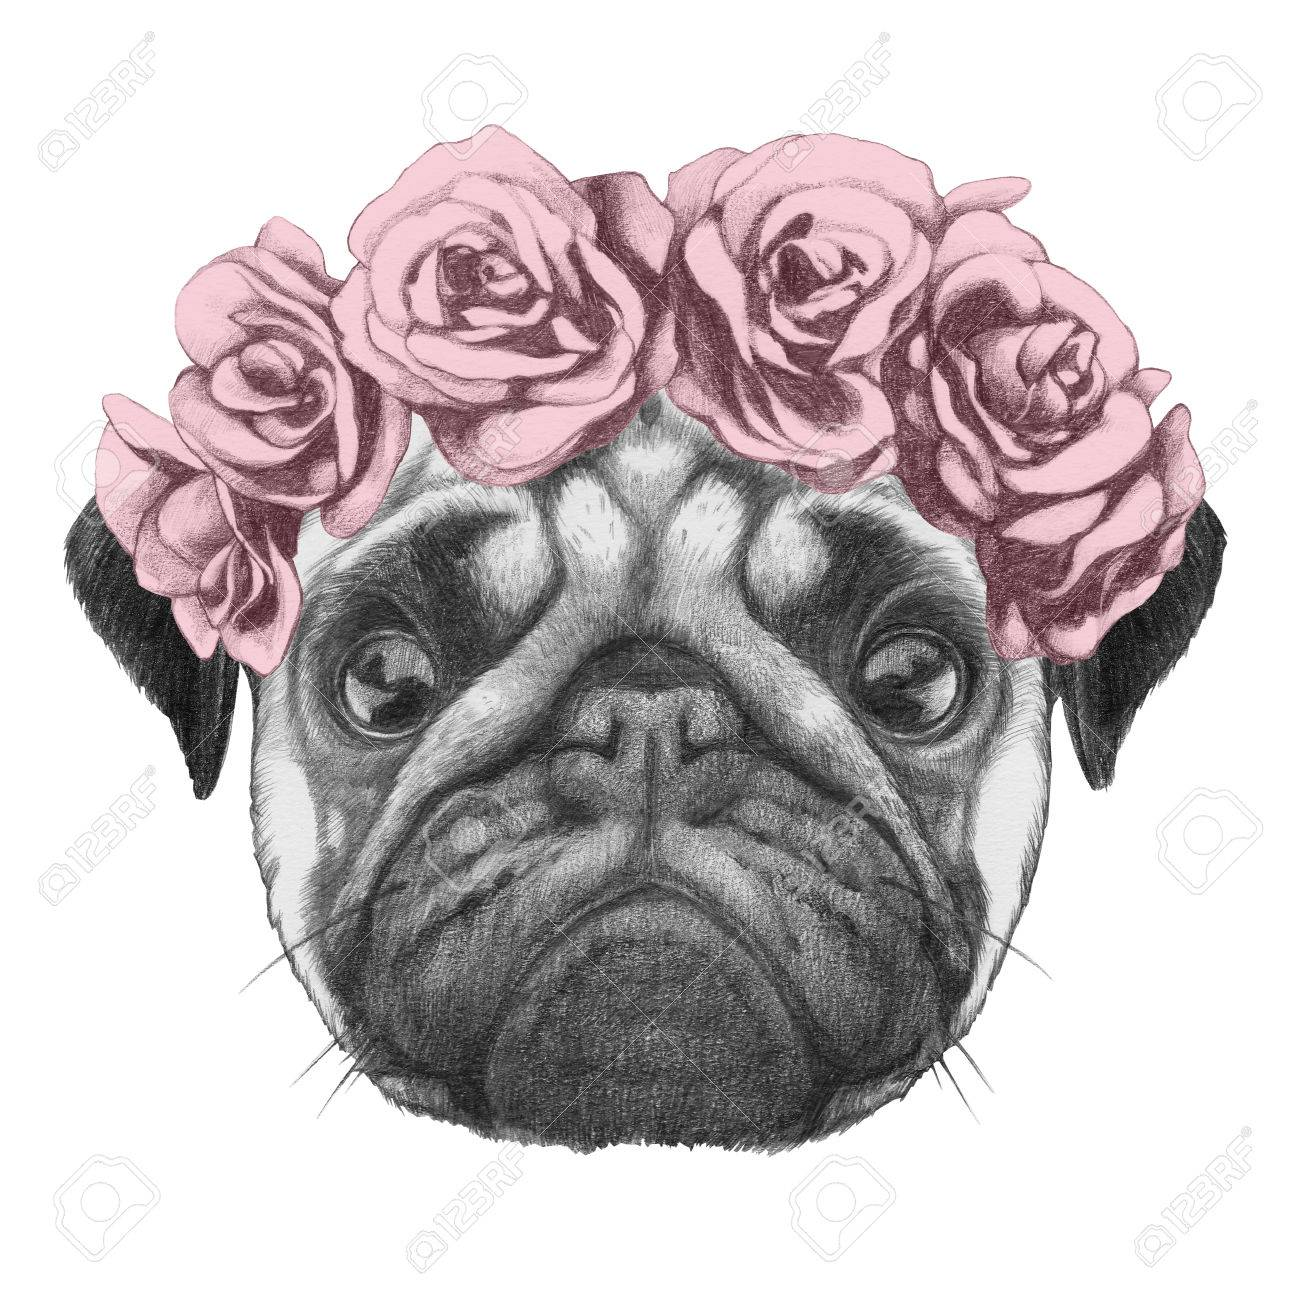 1300x1300 Original Drawing Of Pug Dog With Floral Head Wreath. Isolated